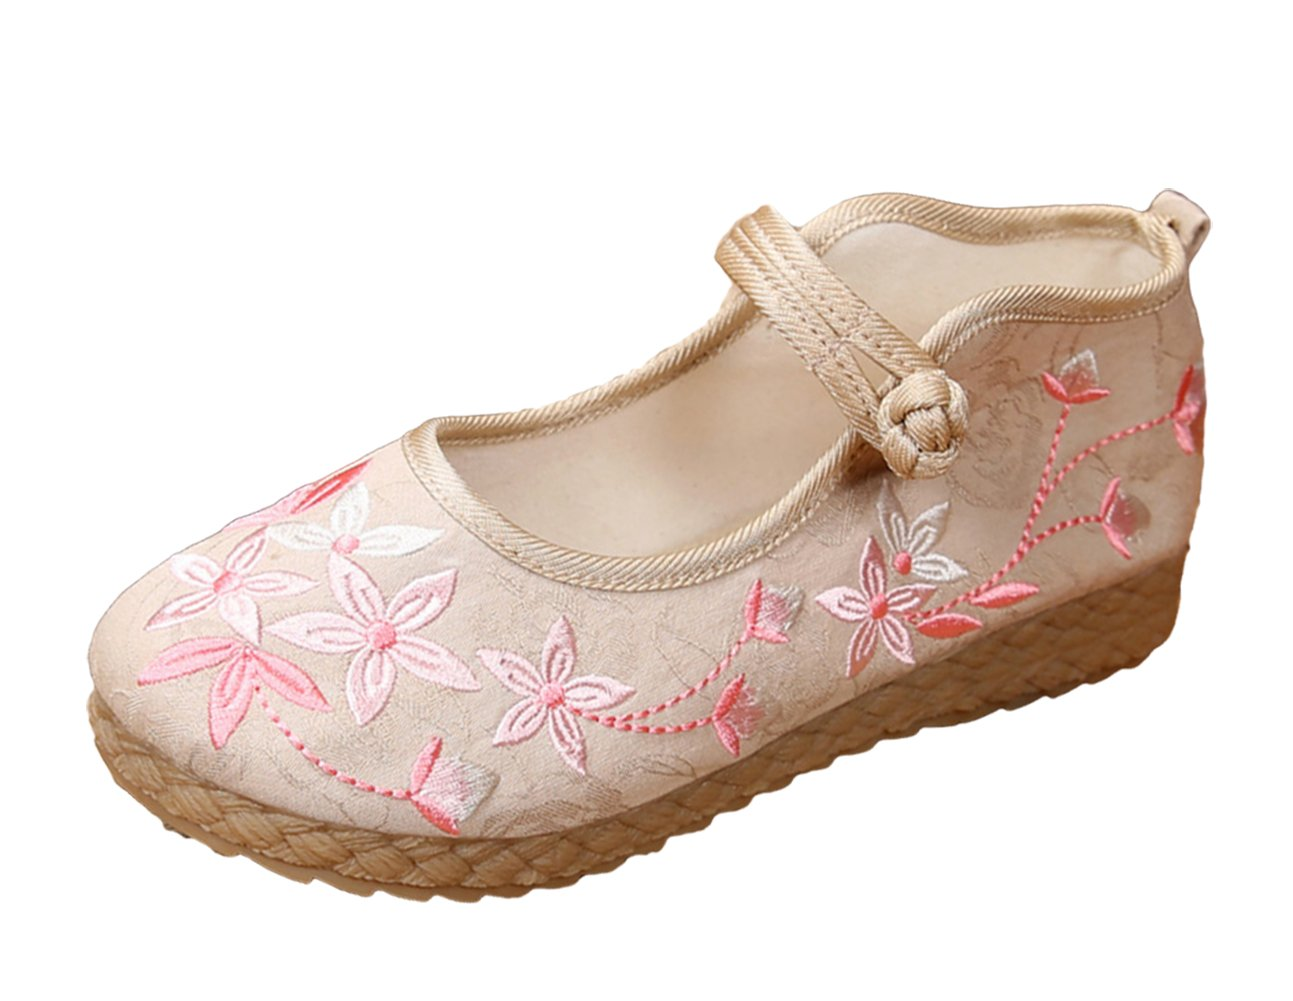 AvaCostume Womens Gardenia Embroidery Chinese Traditional Casual Shoes B075JBKRRZ 36 M EU Beige